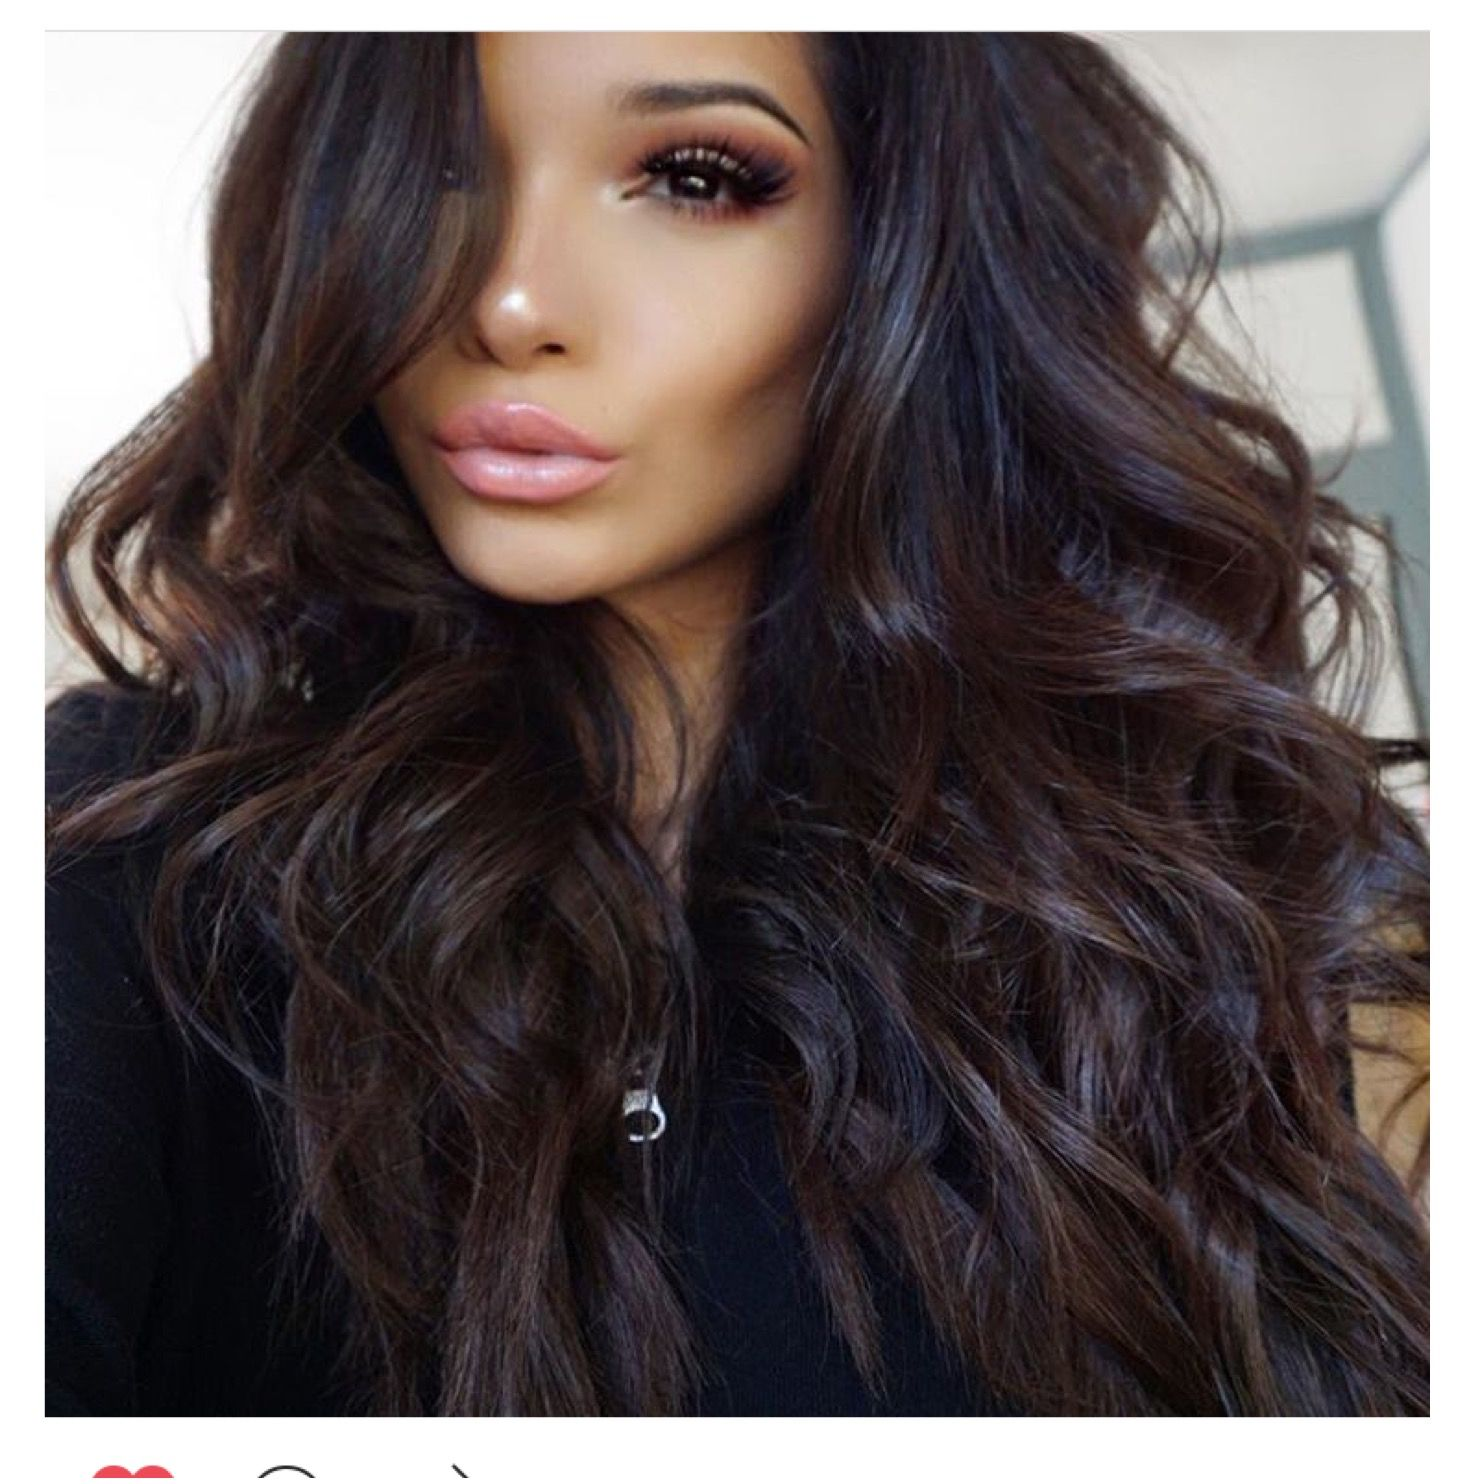 If You Want To Get Extra Dark And Moody With A Mahogany Hairstyle Use The Cool Reddish Brown As Your Base Color Add Black Lowlights In Balayage Or